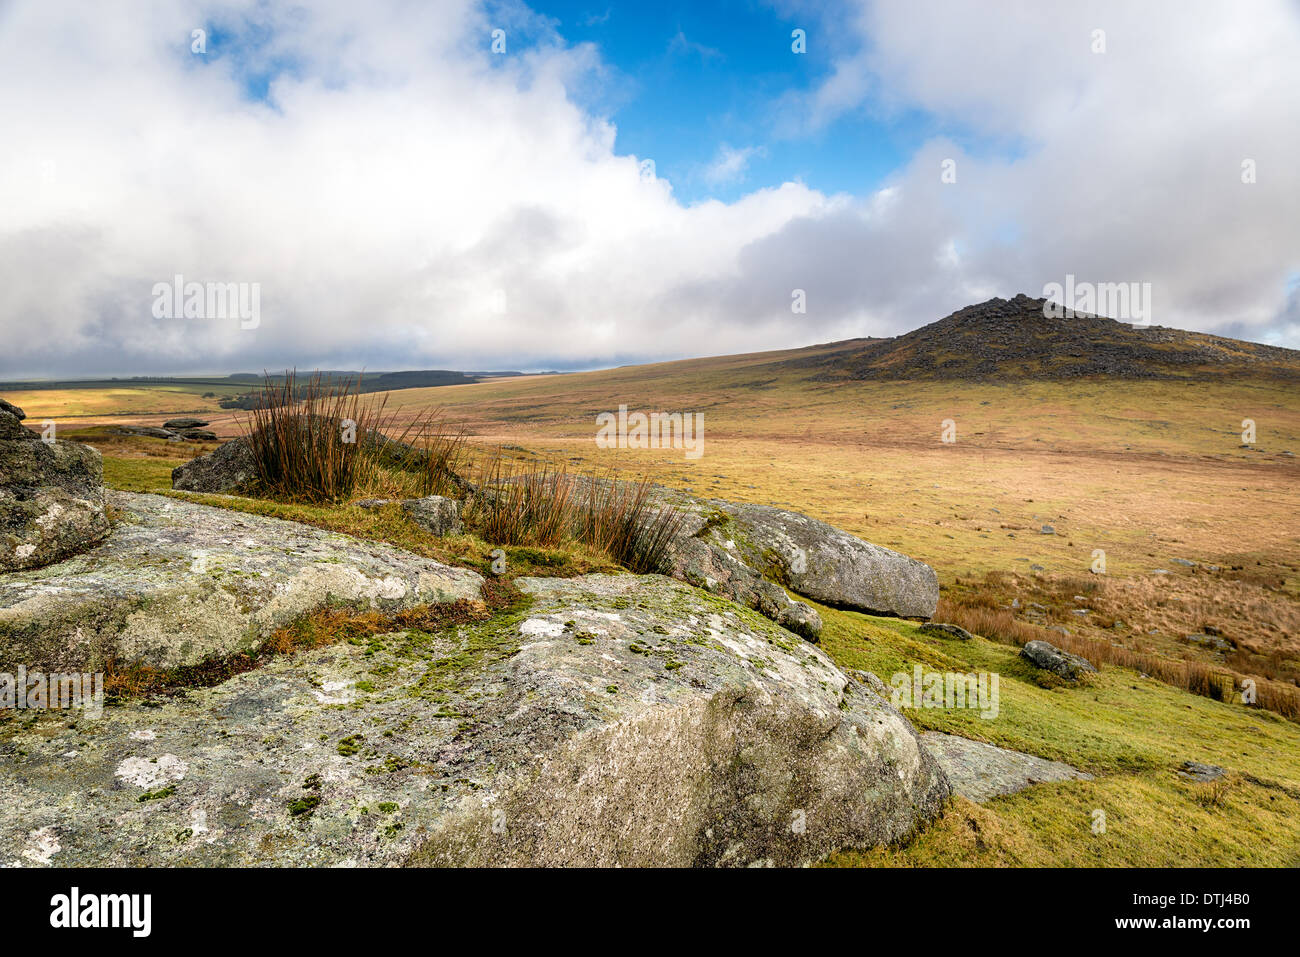 Looking out towards Rough Tor also known as Roughtor on Bodmin Moor in Cornwall - Stock Image